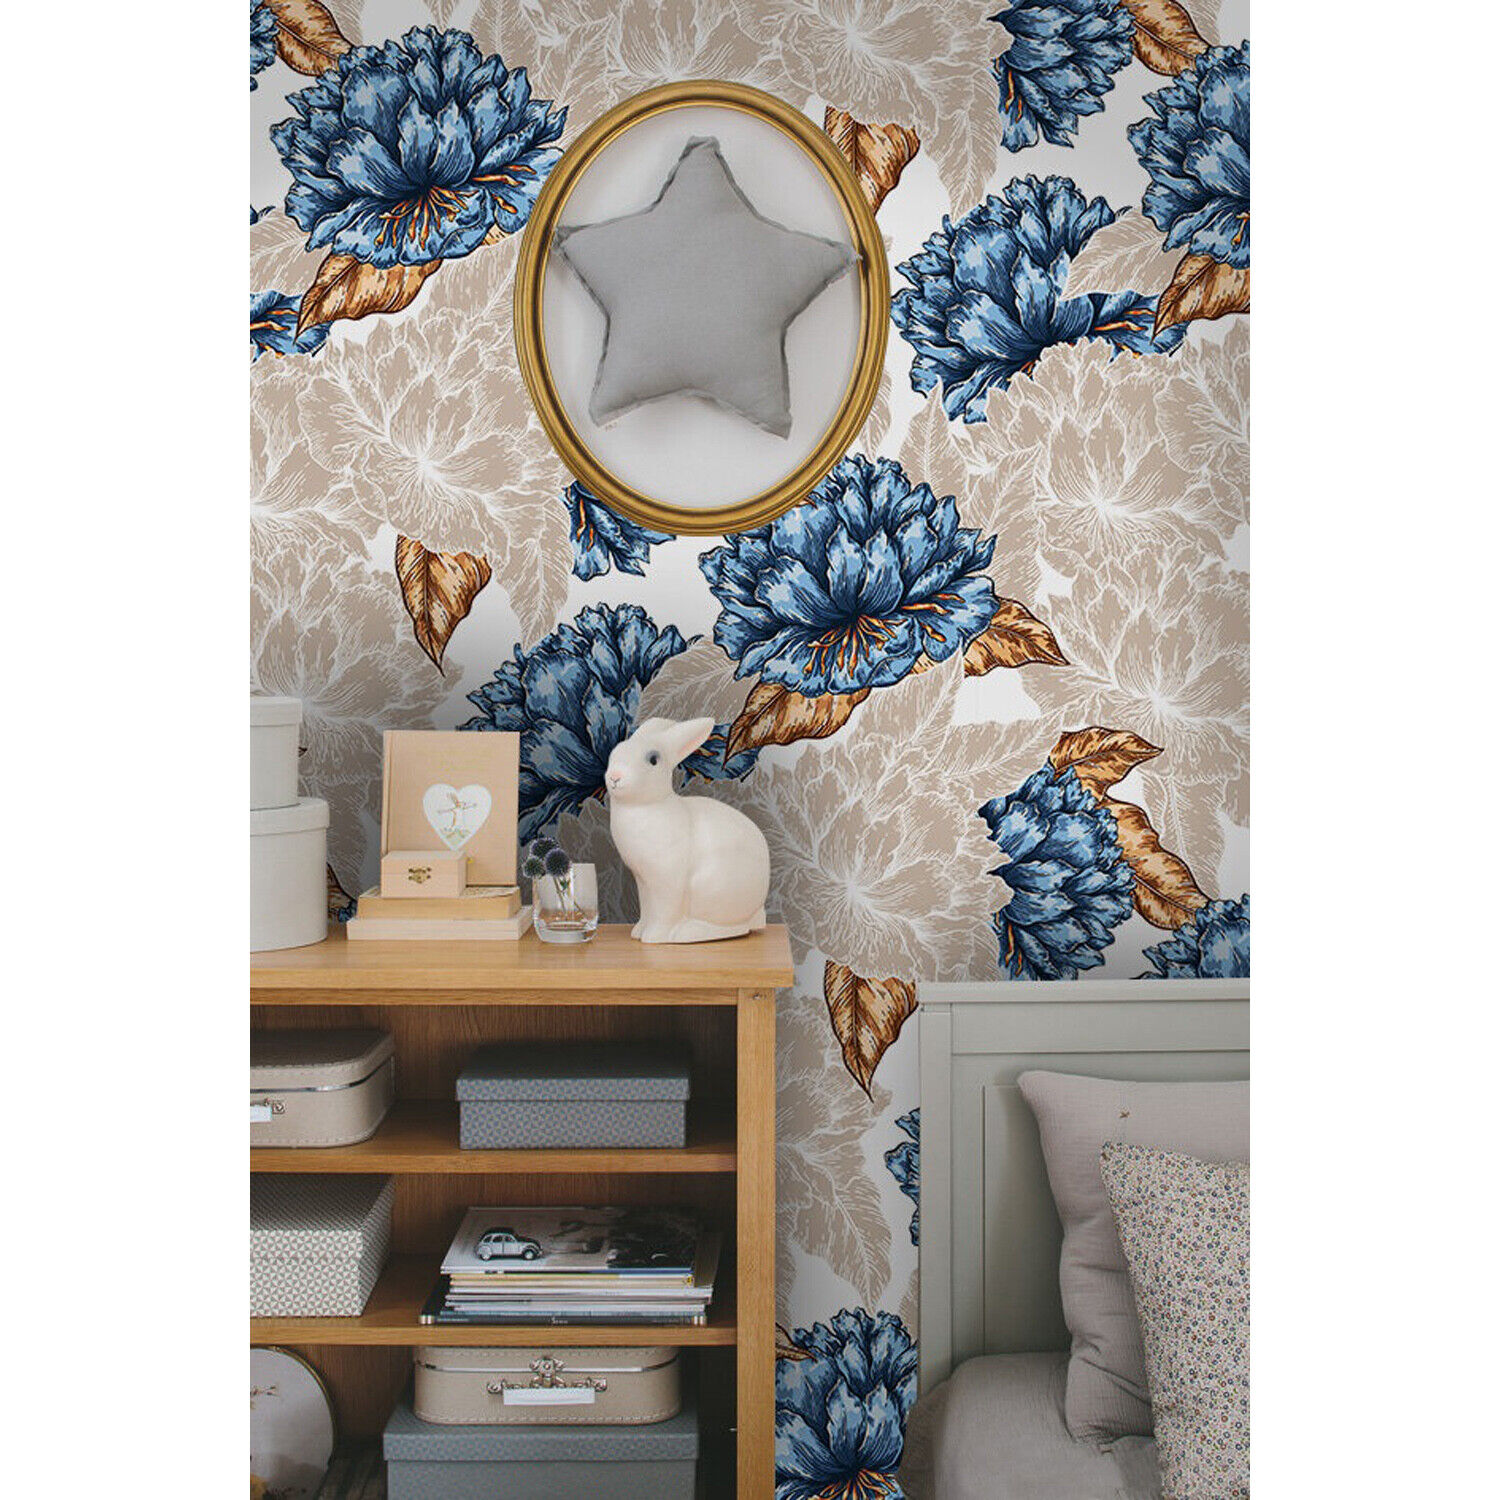 Graphic flower Removable wallpaper Blau and Golden wall mural large